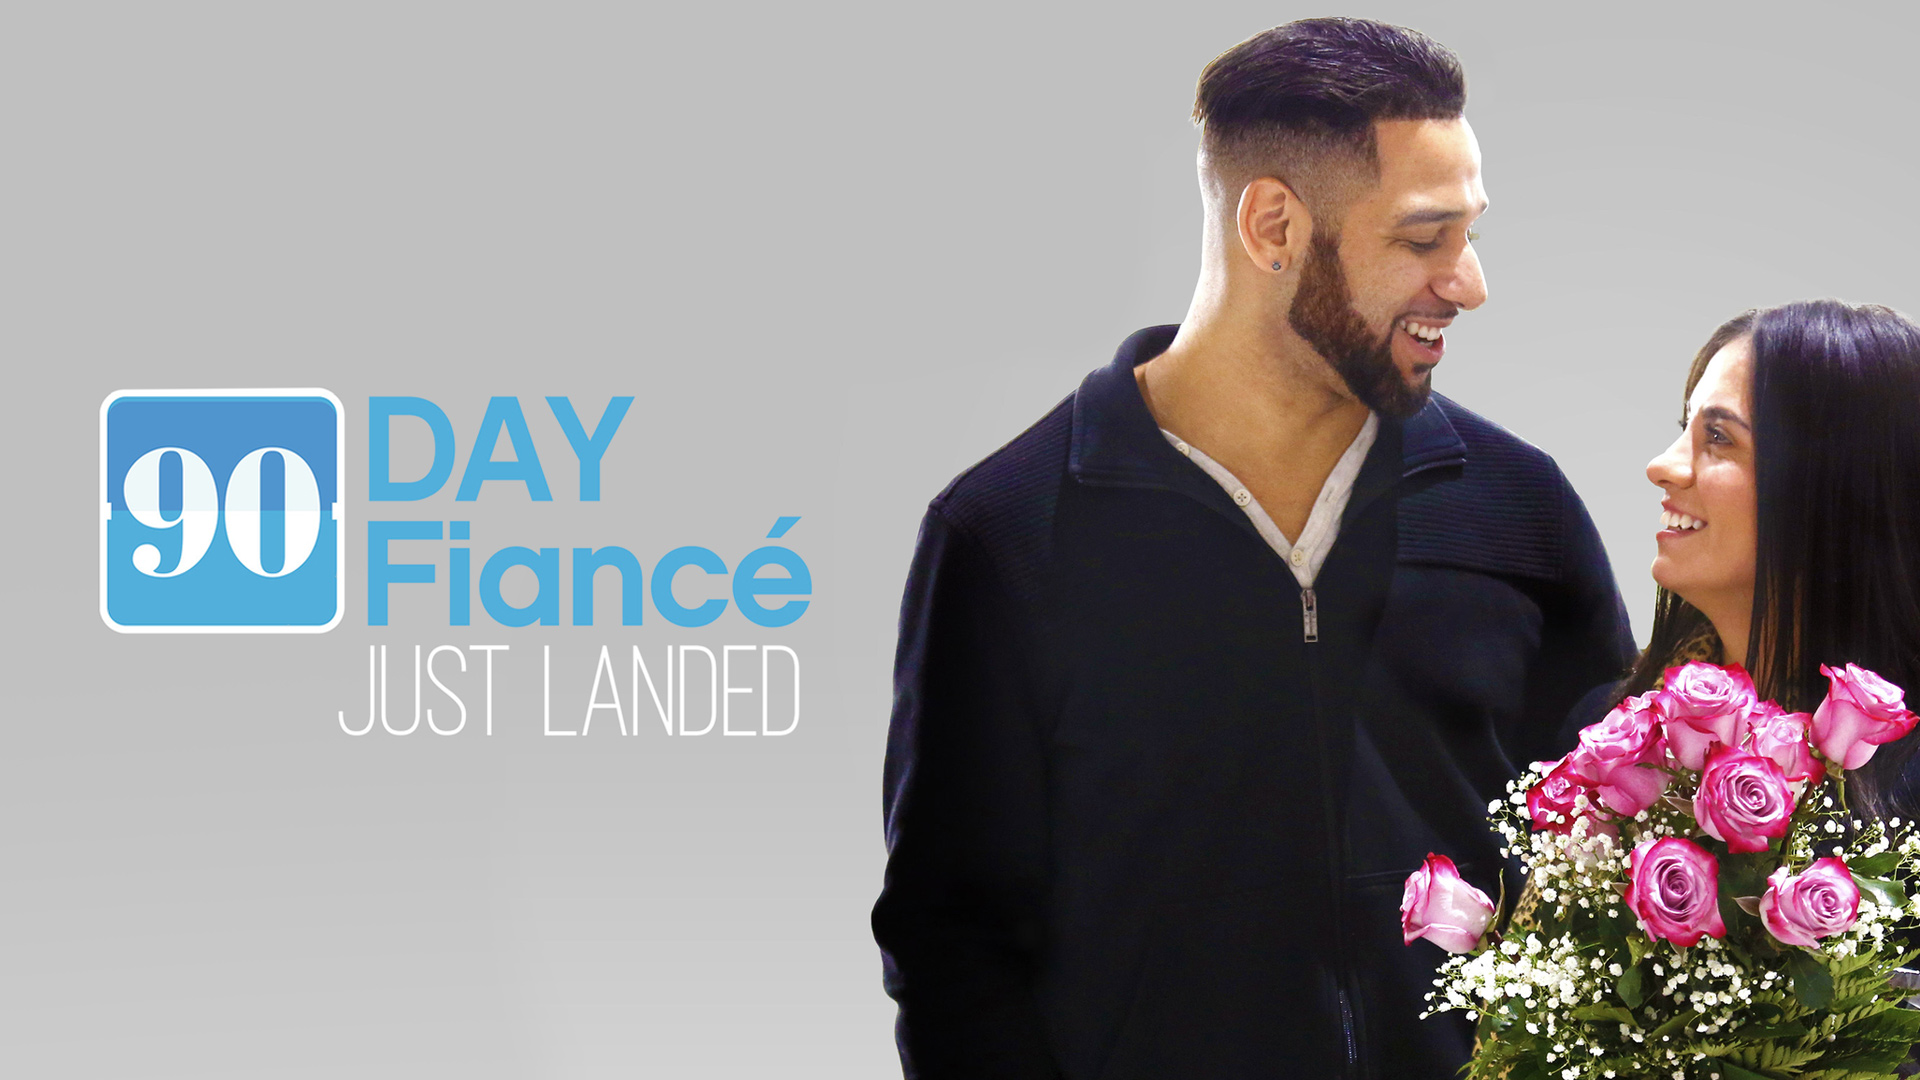 90 Day Fiance: Just Landed - Season 1